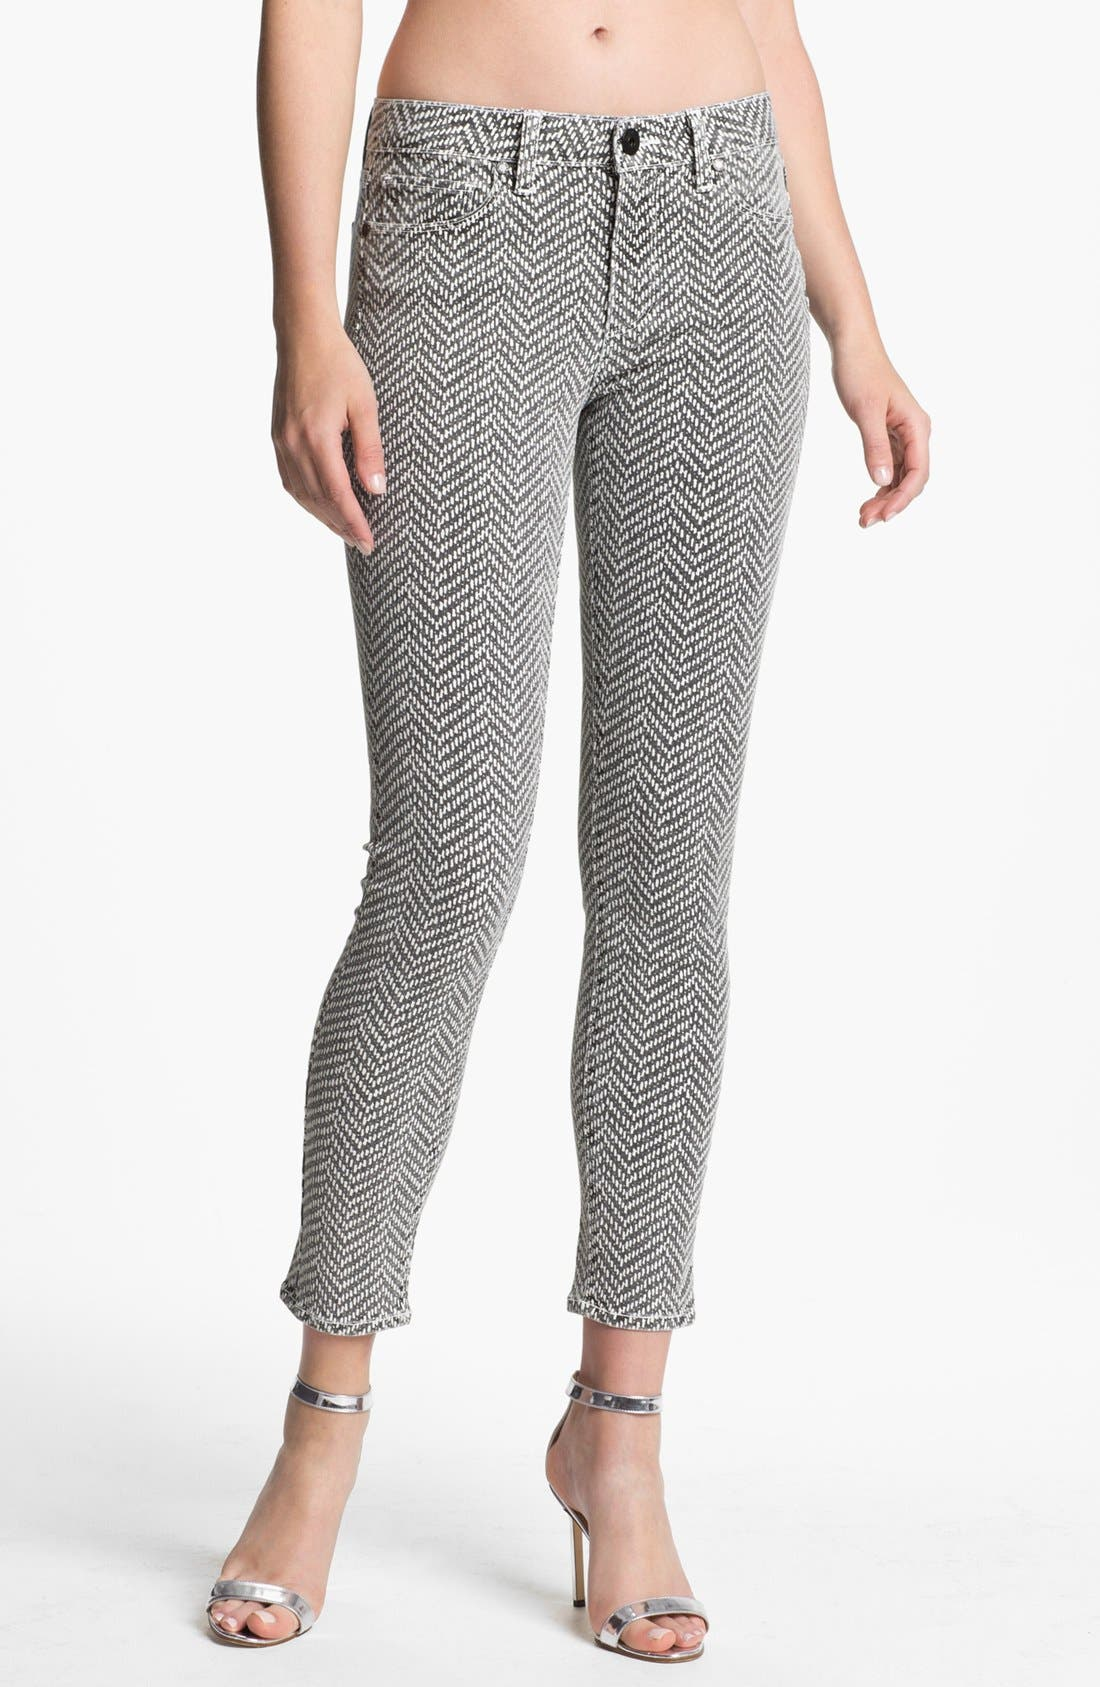 Main Image - Paige Denim 'Hoxton' Ankle Jeans (White/Black)